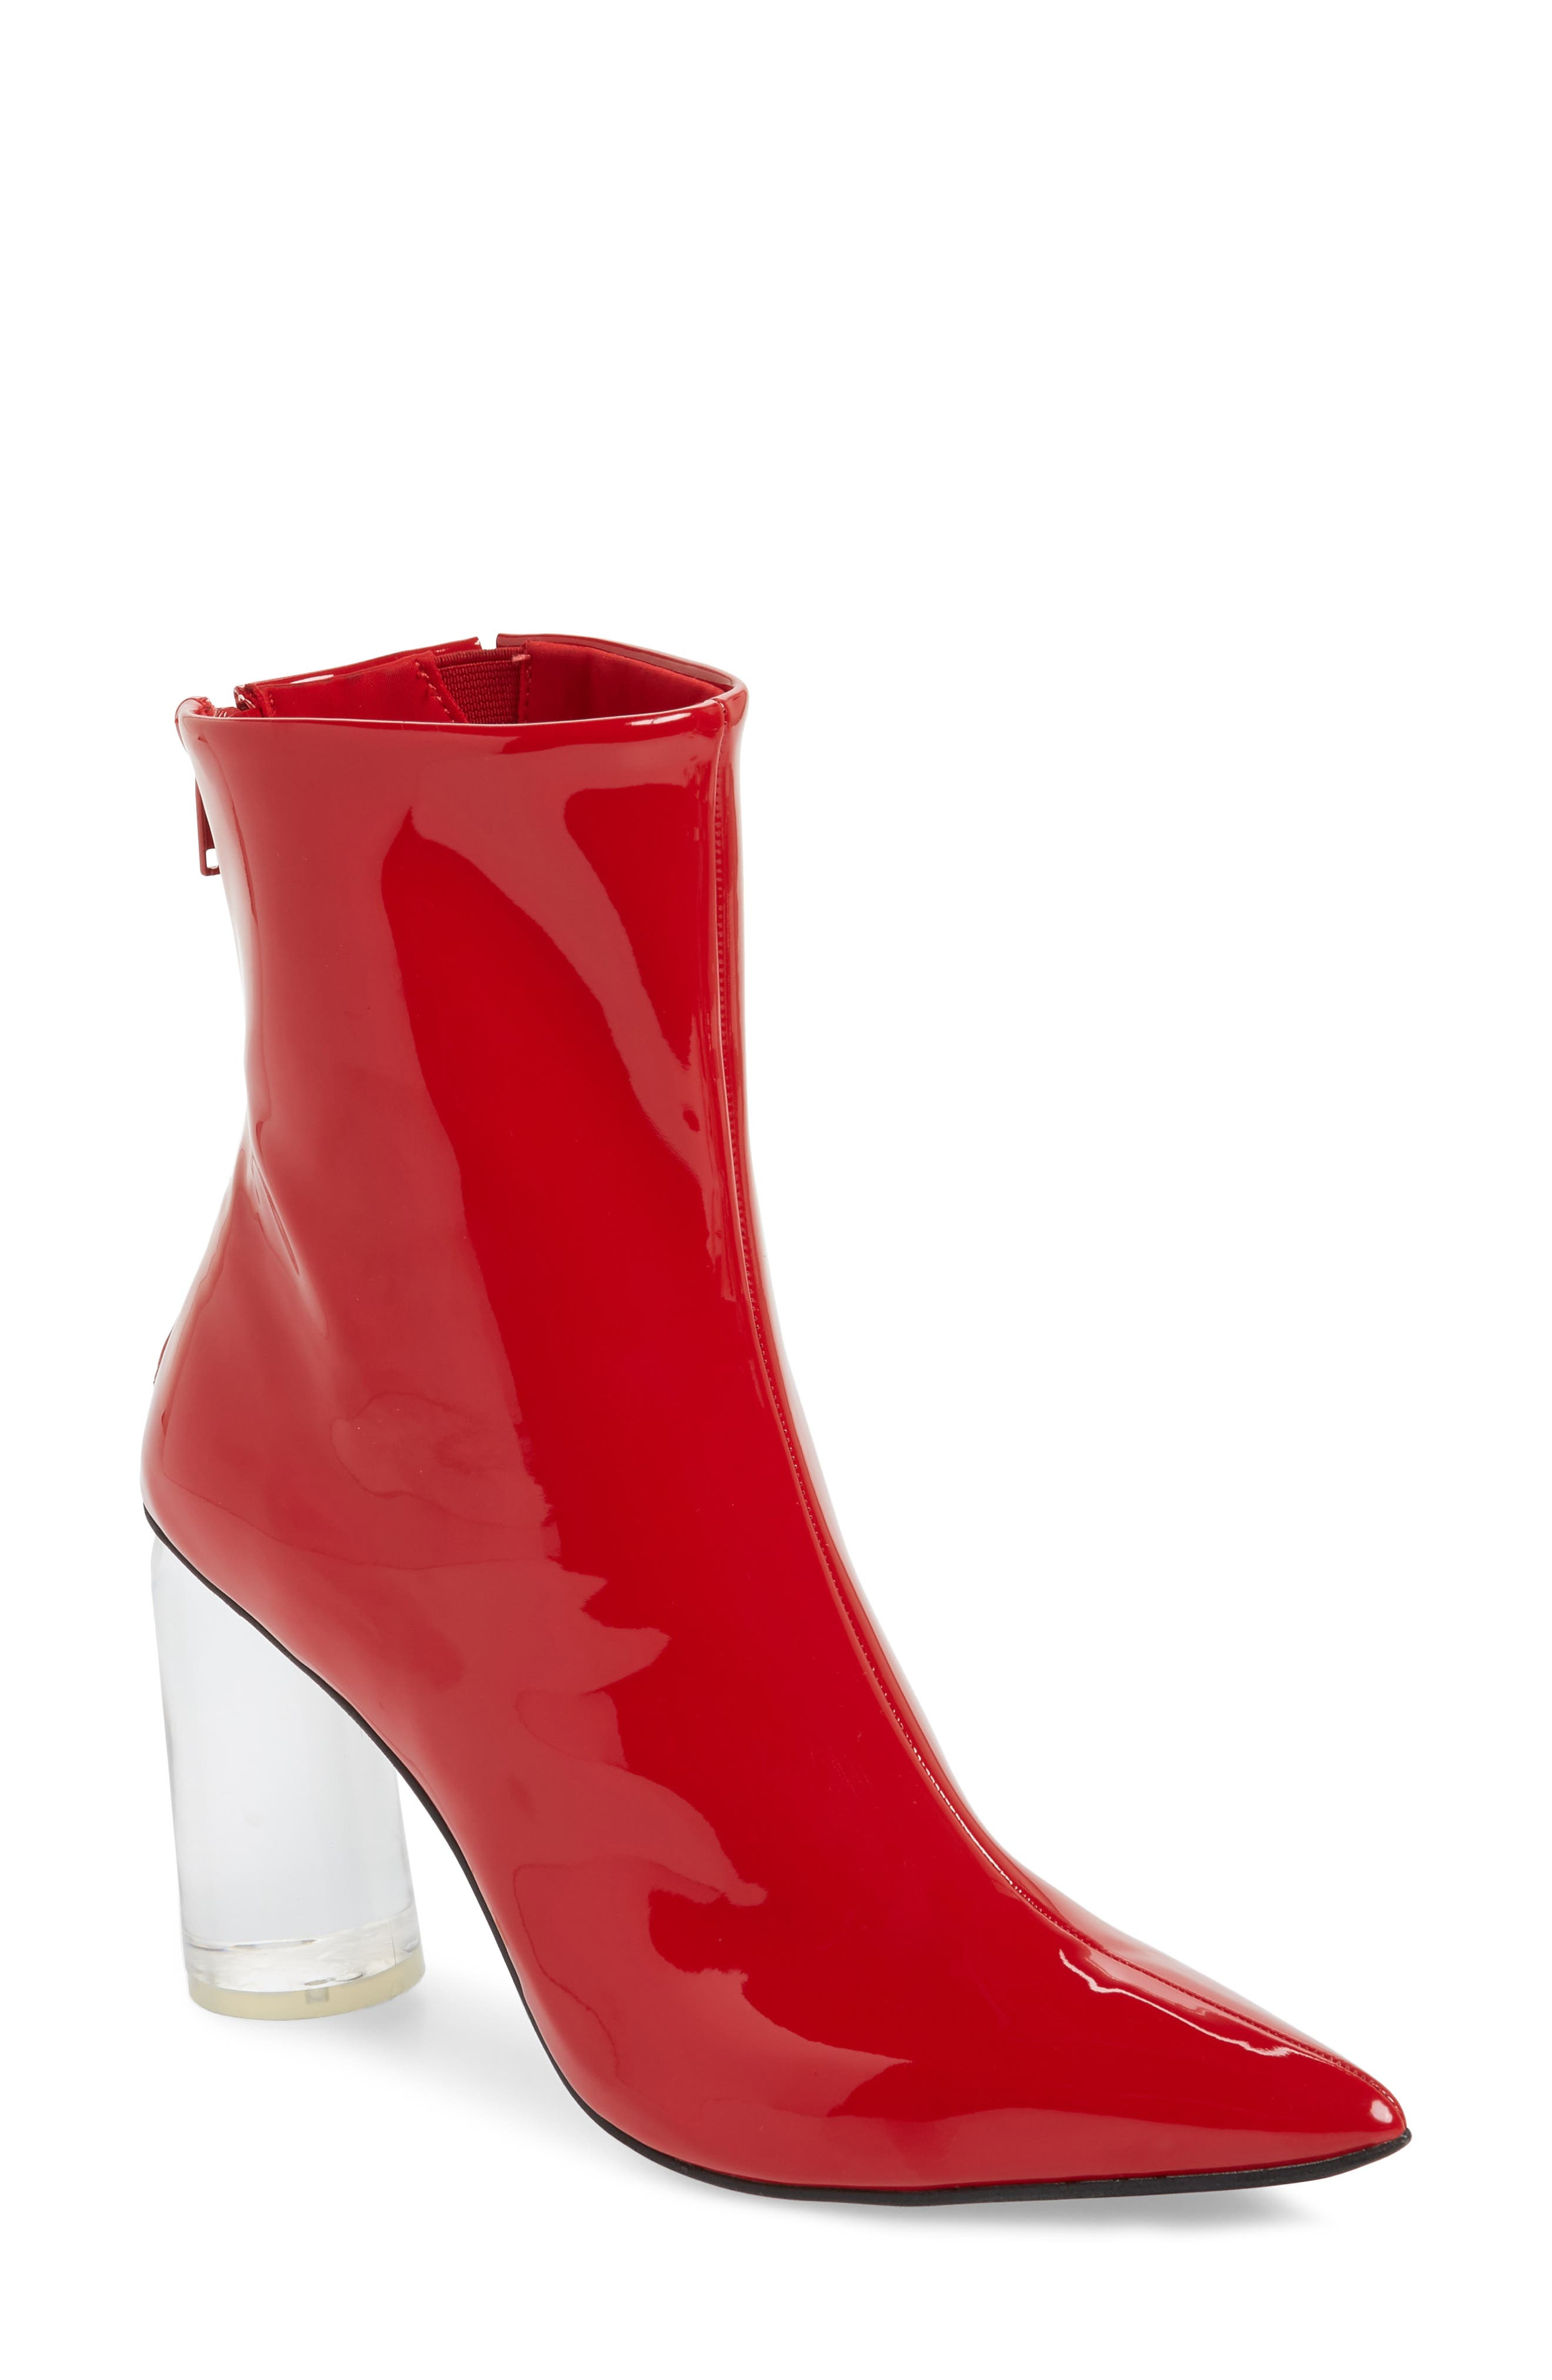 Lustrous Column Heel Bootie,                             Main thumbnail 1, color,                             Red Patent Leather/ Clear